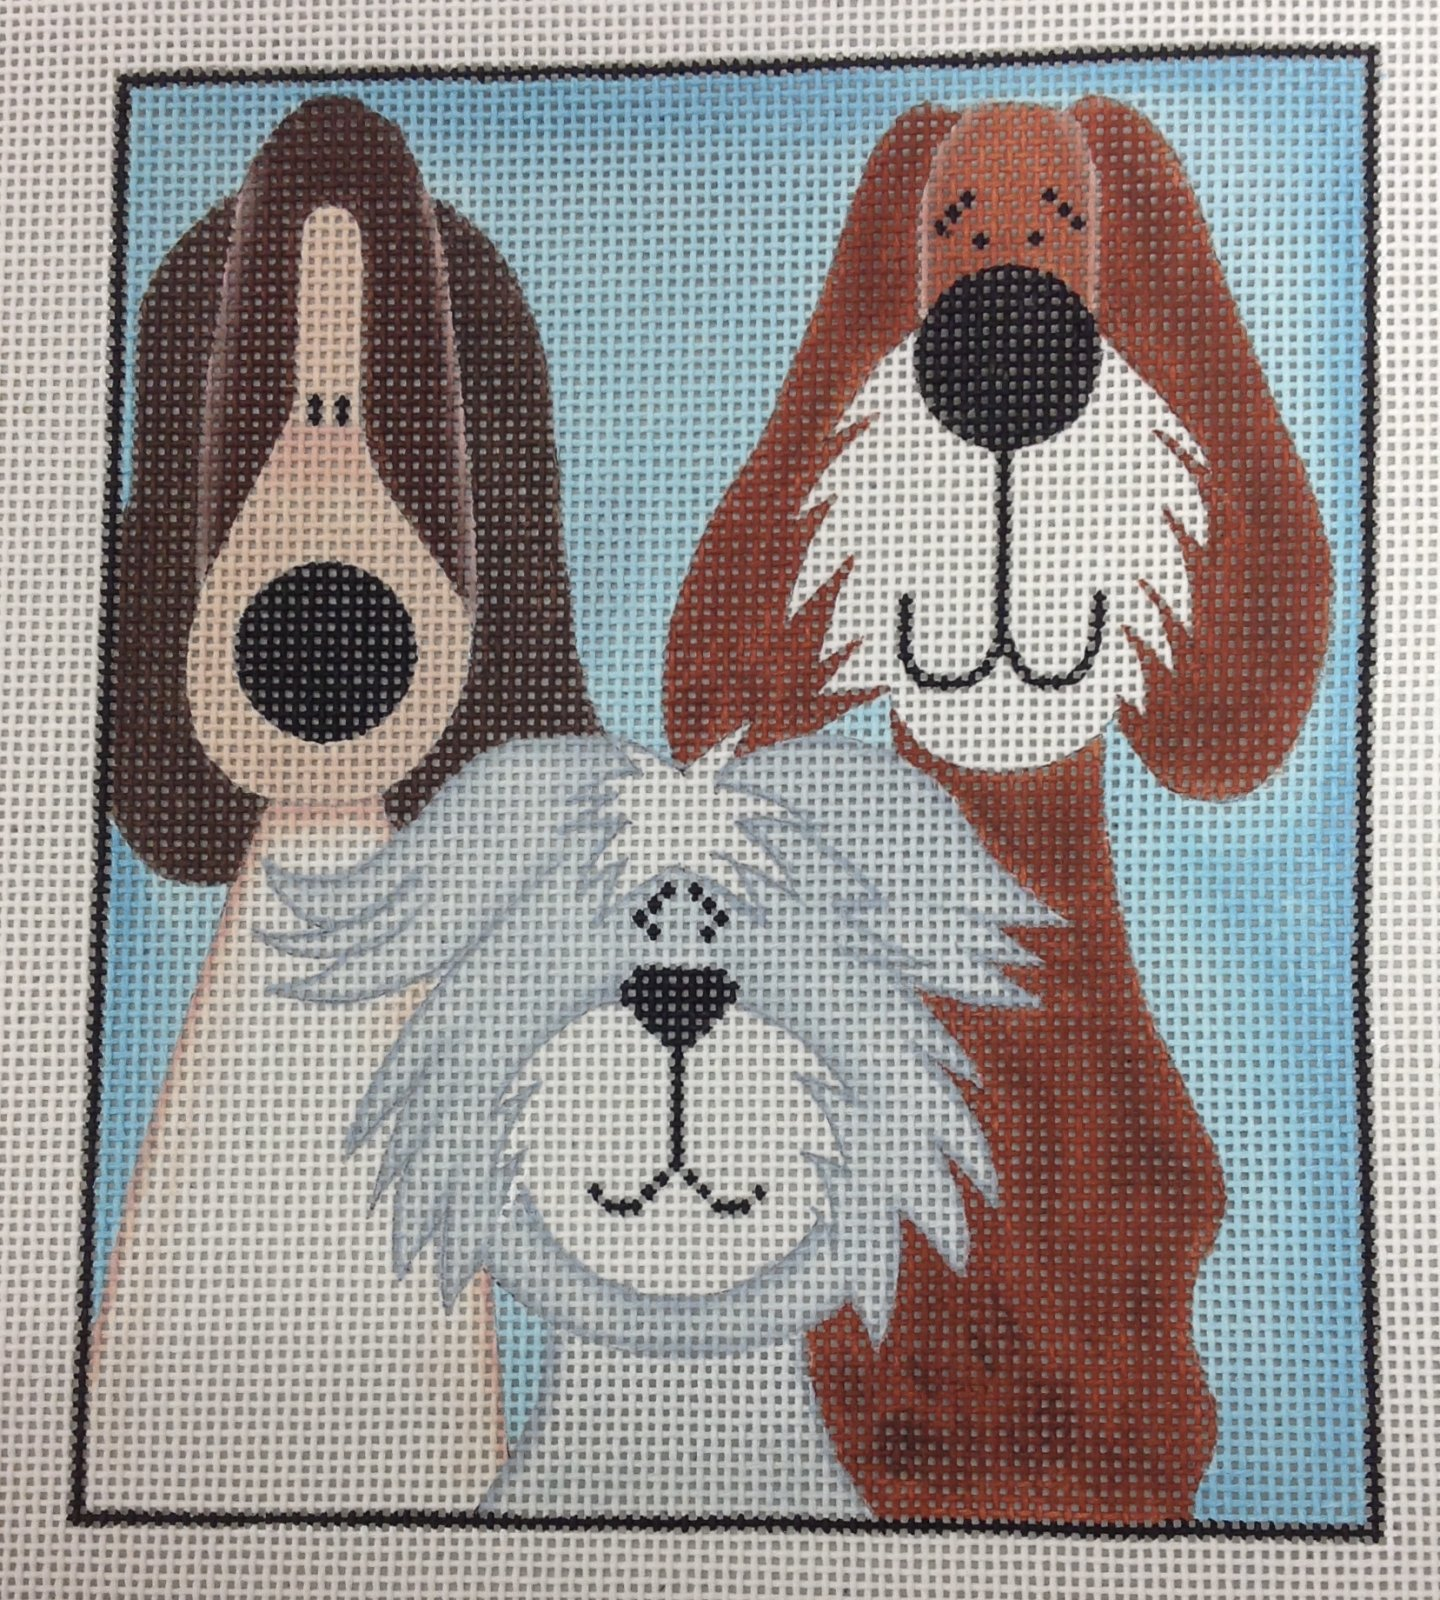 3 tall whimsical pups*